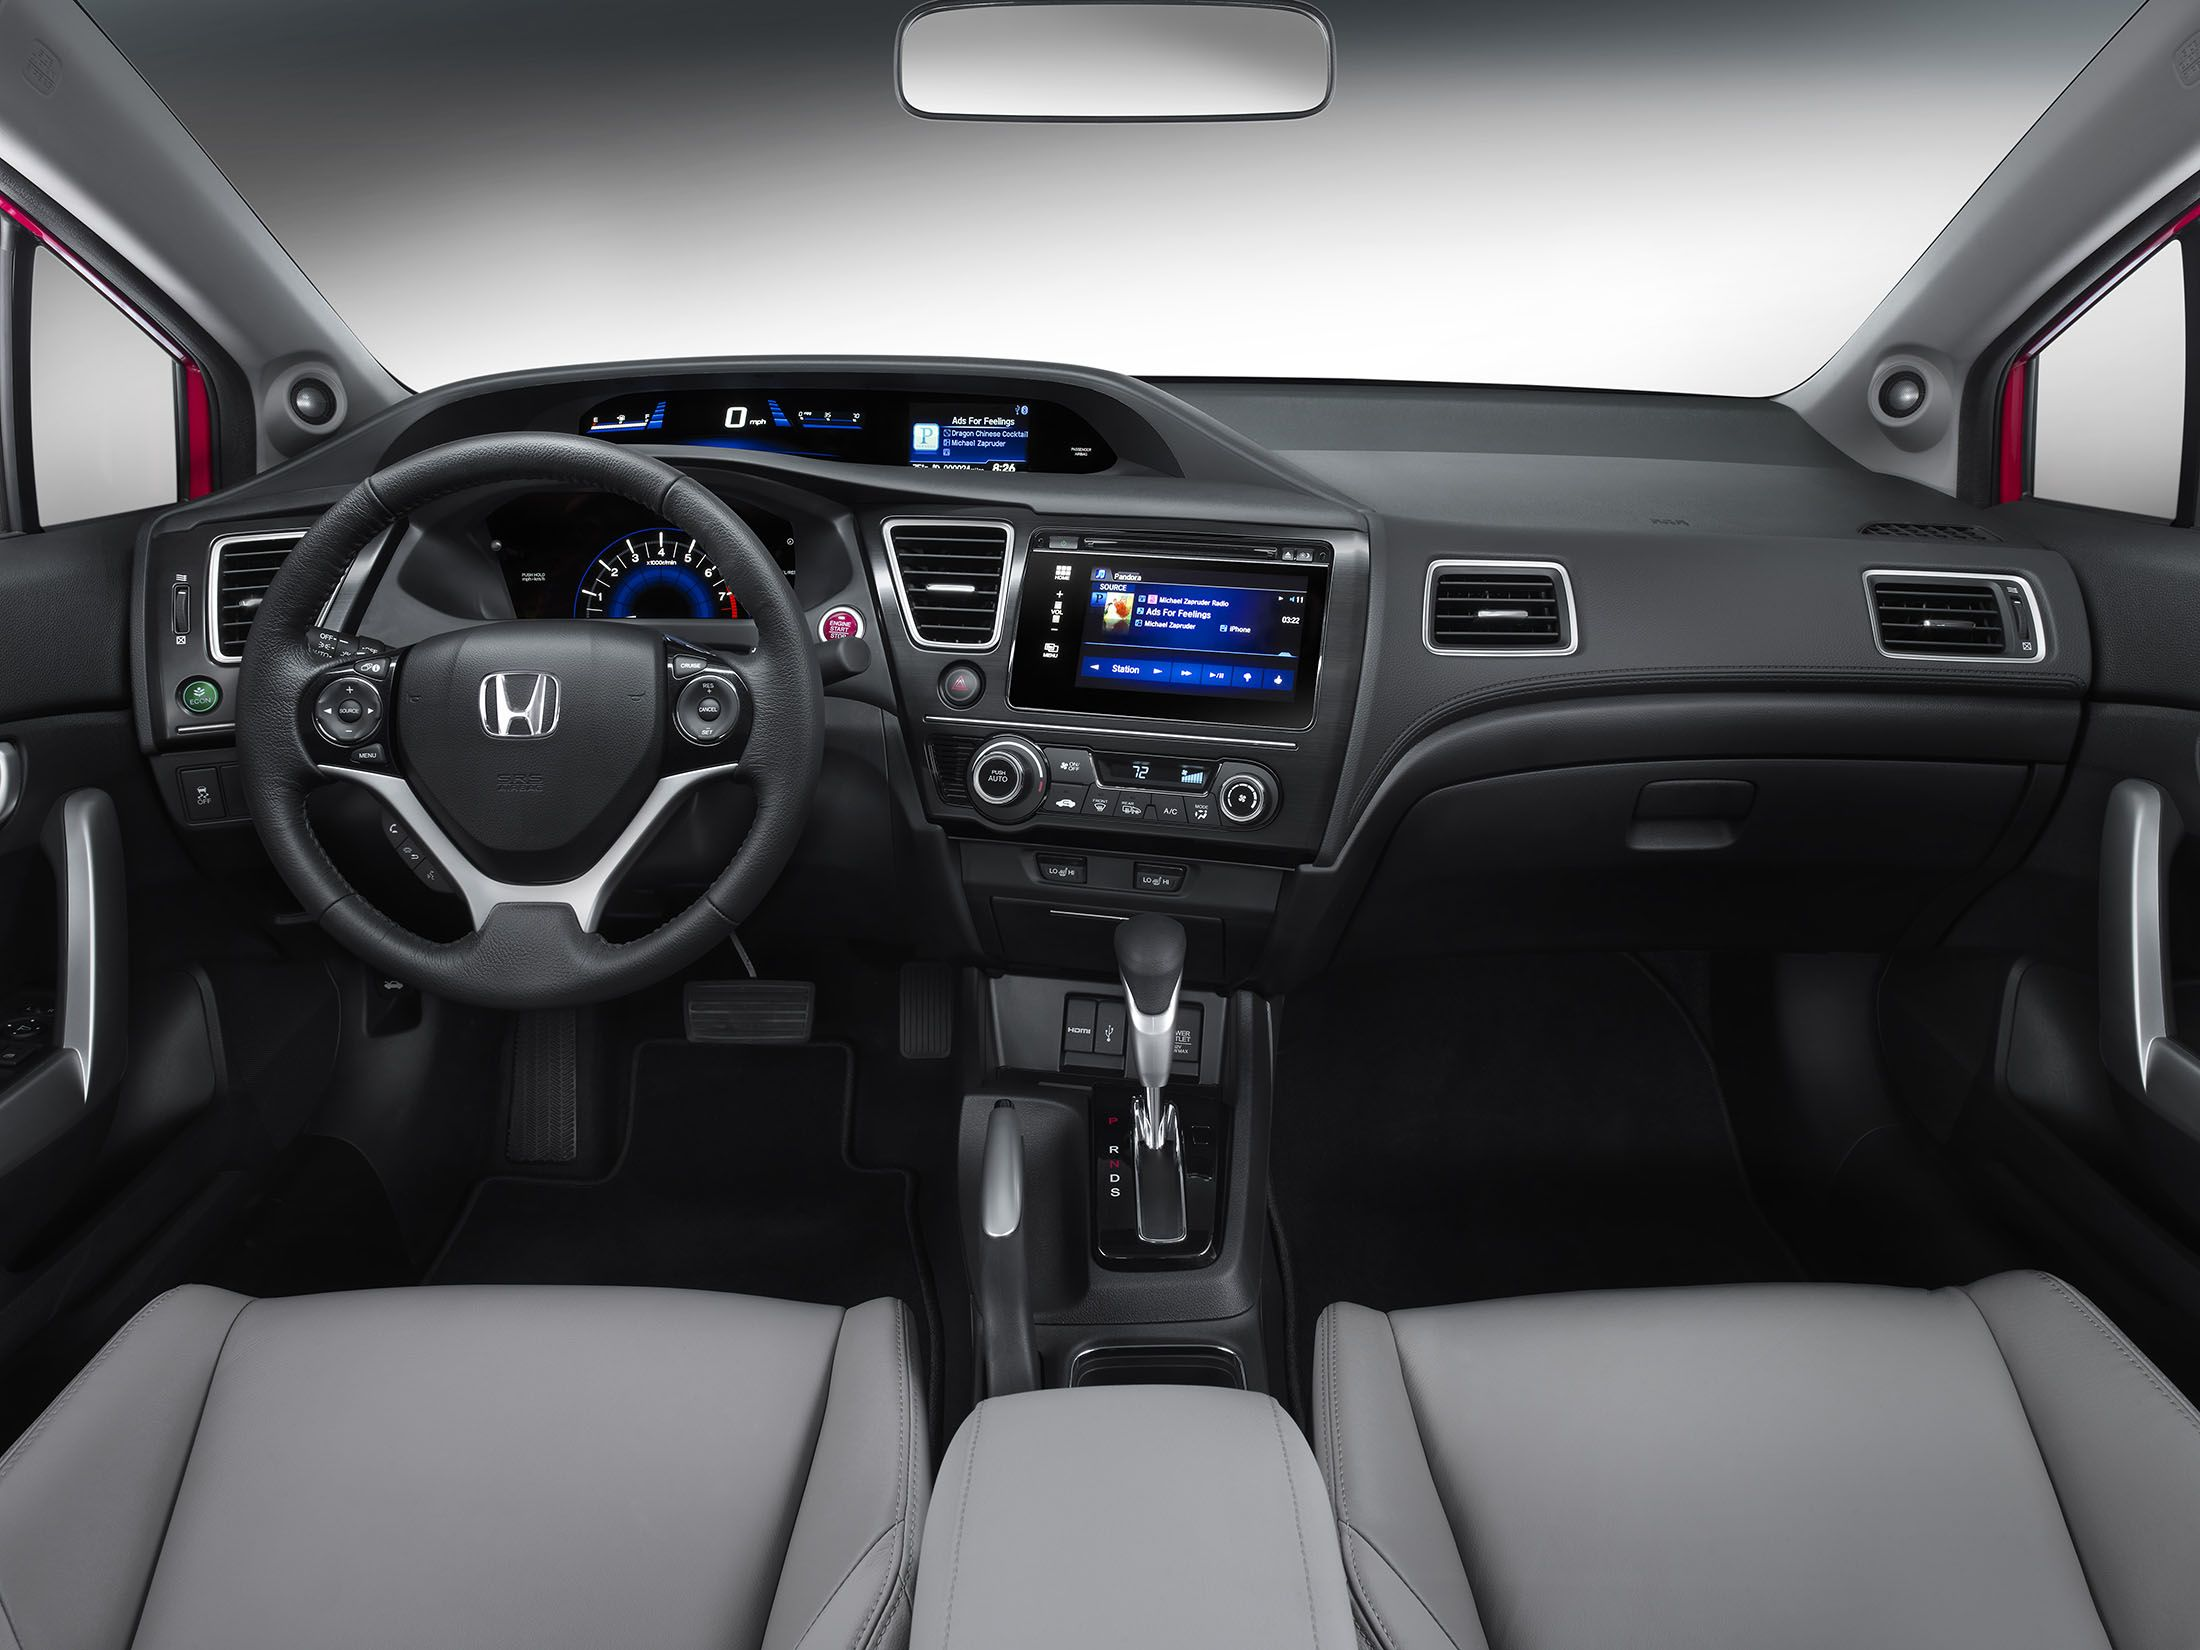 2015 Honda Civic Interior | Auto speed | Pinterest